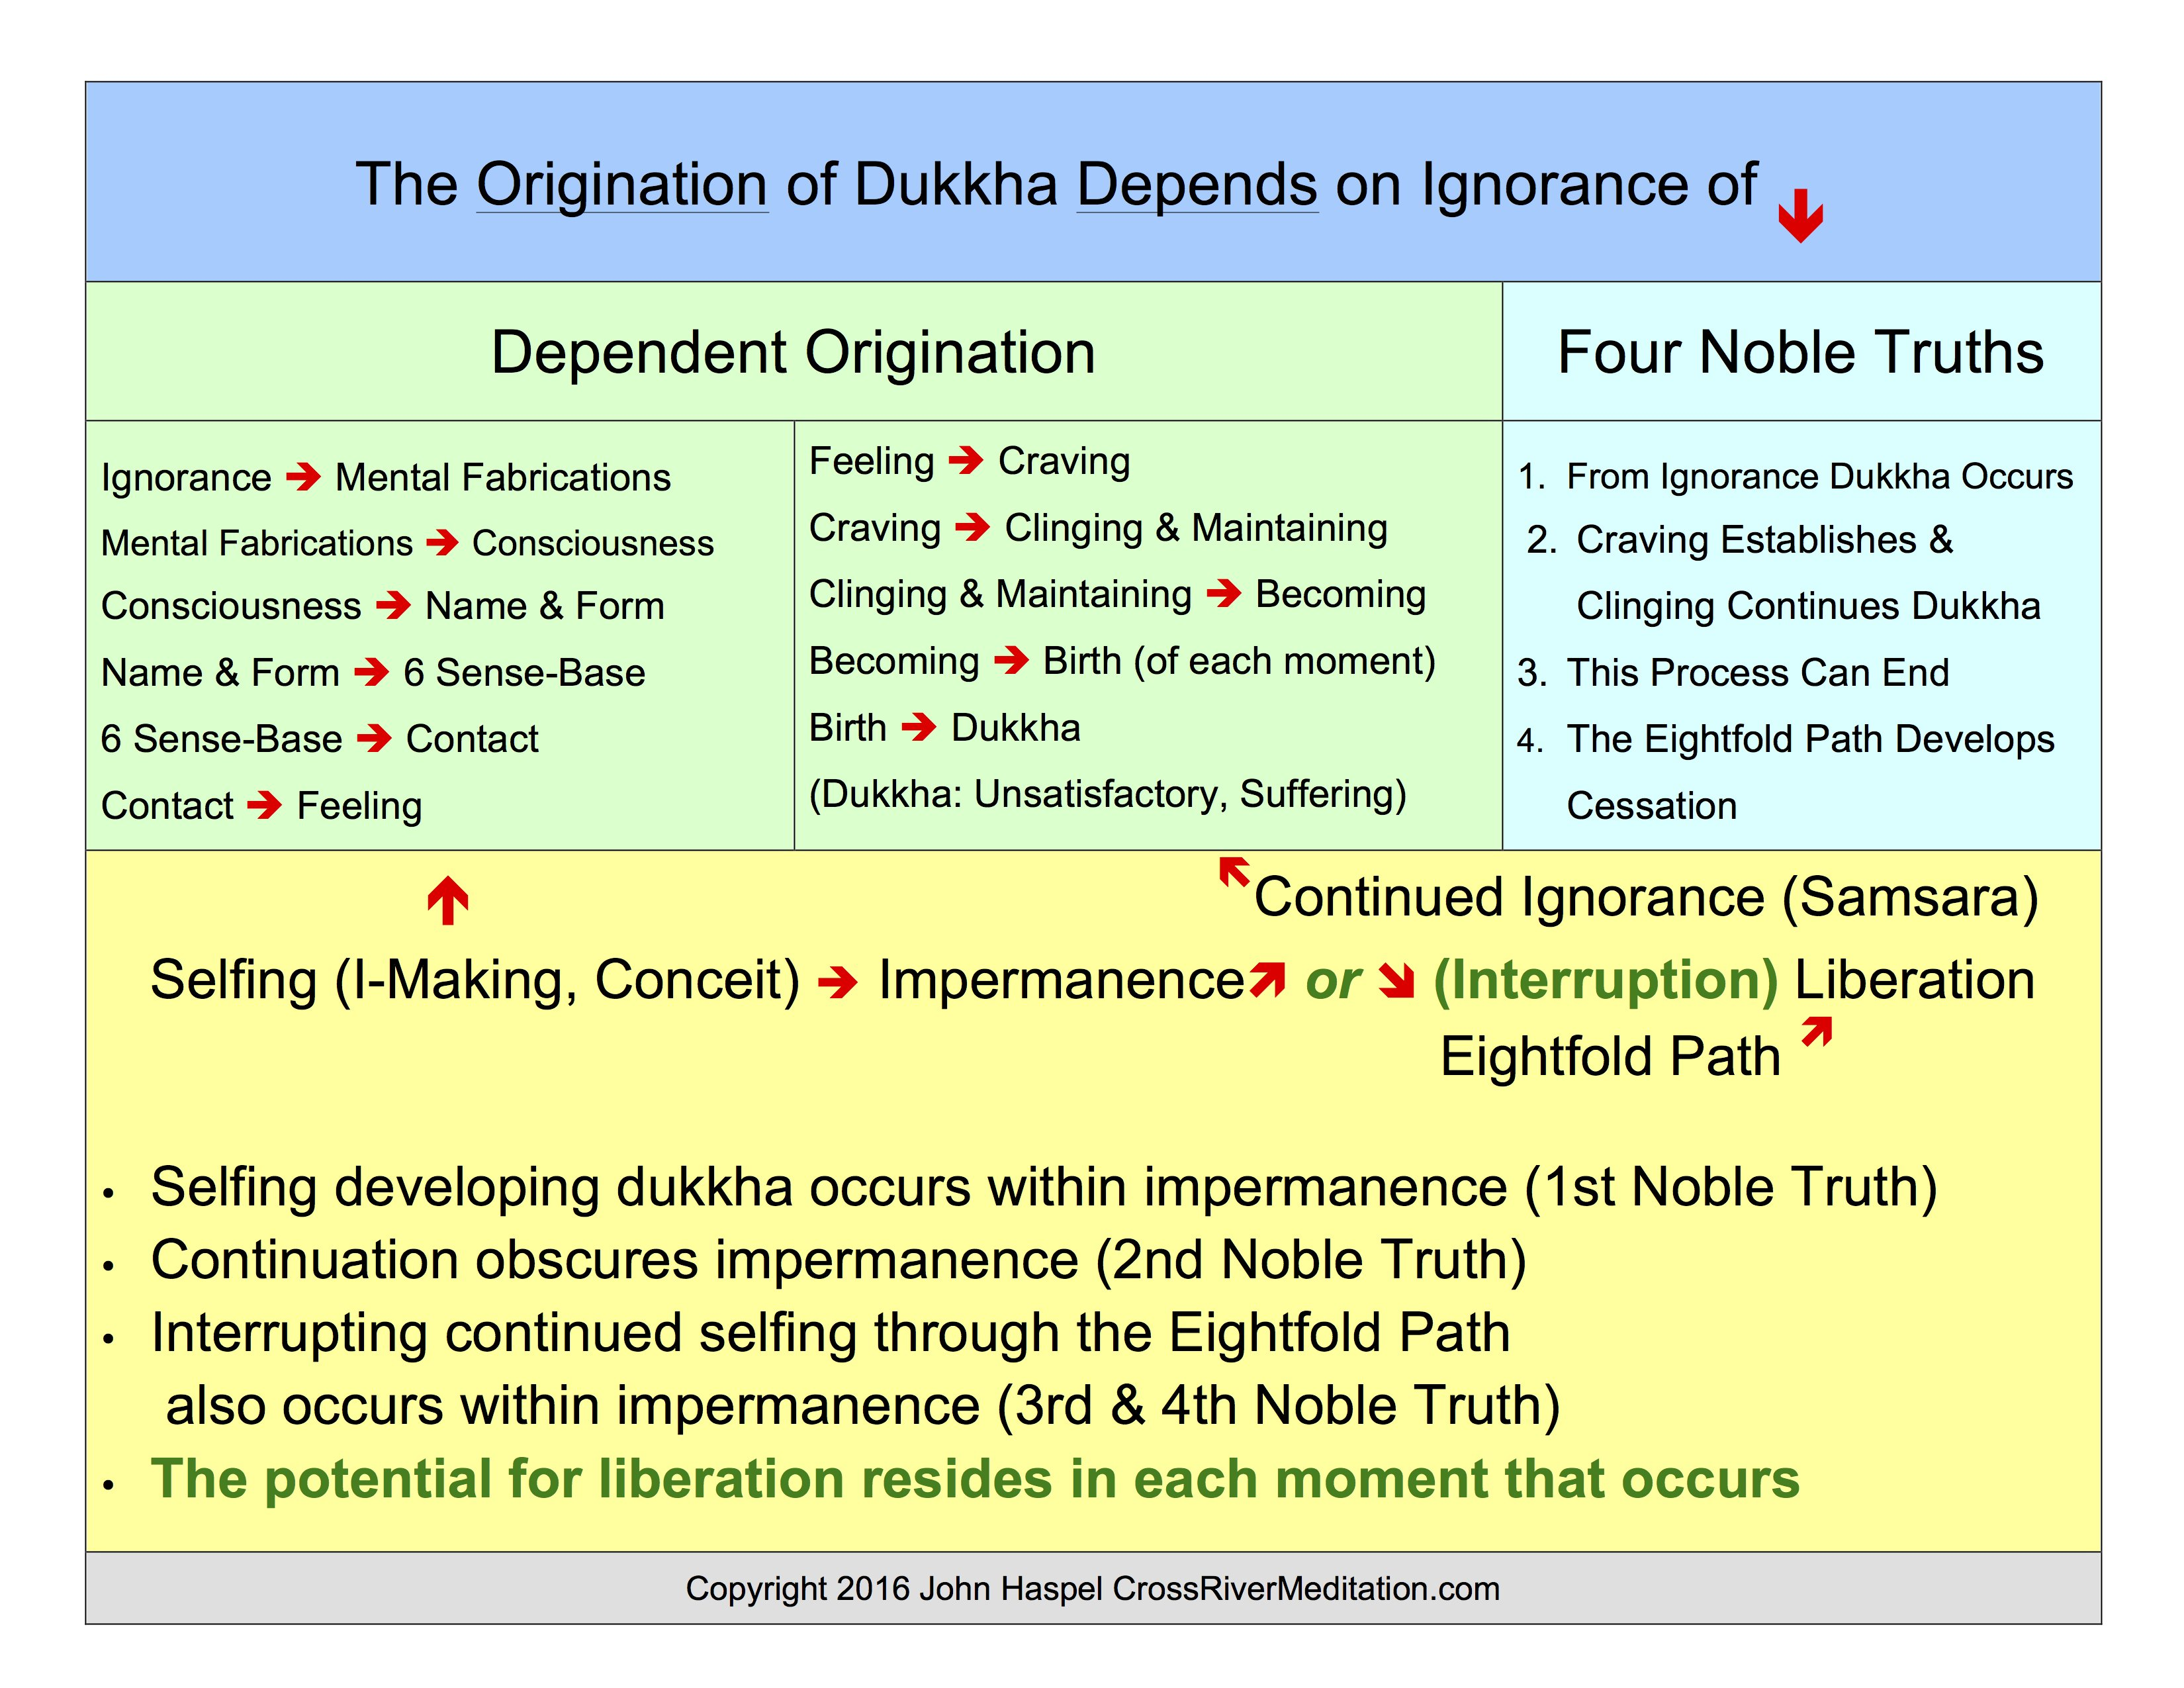 four noble truths eightfold path essay The four noble truths are be set and learnt in that network, learning how the various teachings intersect with each other, and refer to the various buddhist techniques, which are all explicitly and implicitly part of the passages which refer to the four truths.